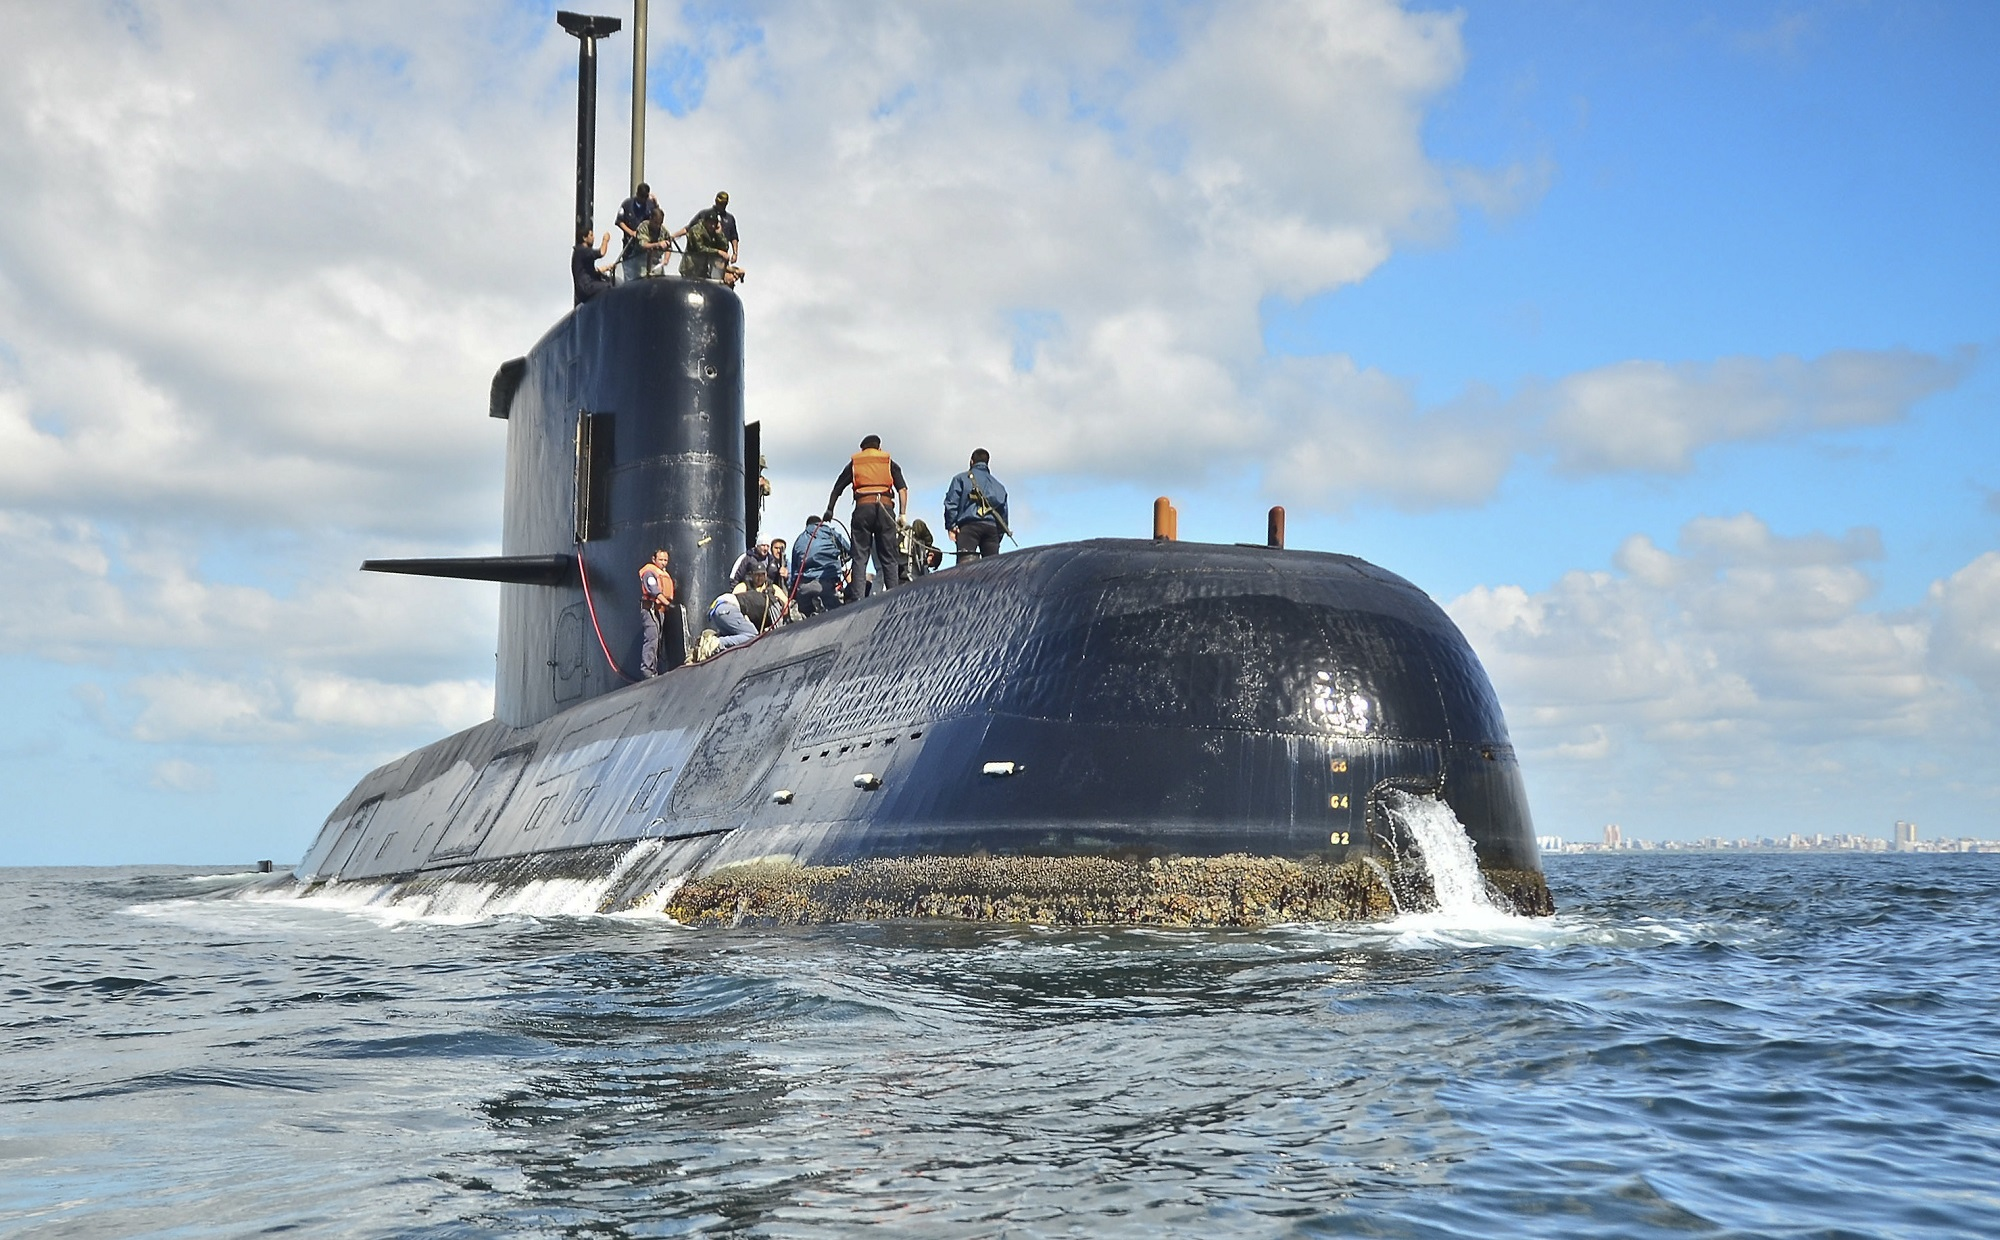 Argentina says calls did not come from missing submarine